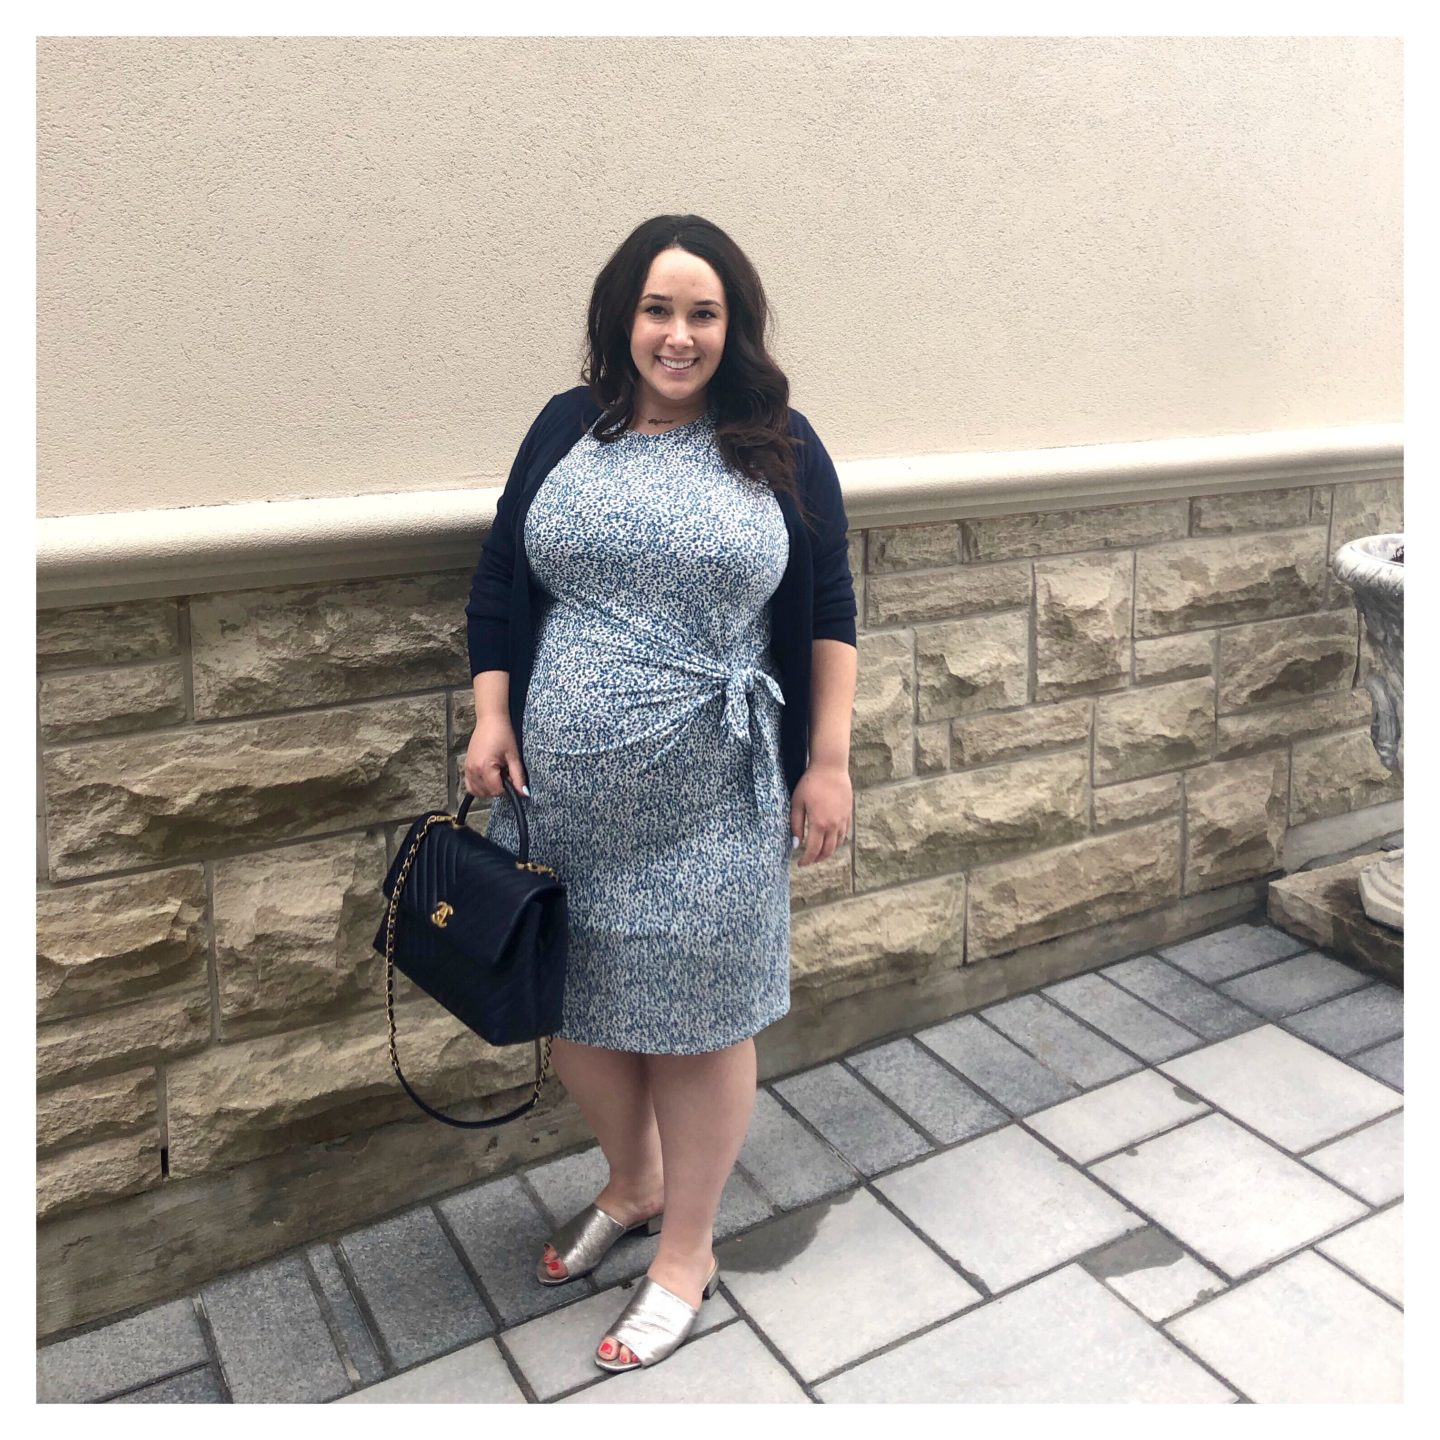 0e02e27c557af Non-maternity pregnancy attire is always a hot topic online. Maternity items  have come a long way and I'm currently wearing a mix of maternity clothing,  ...